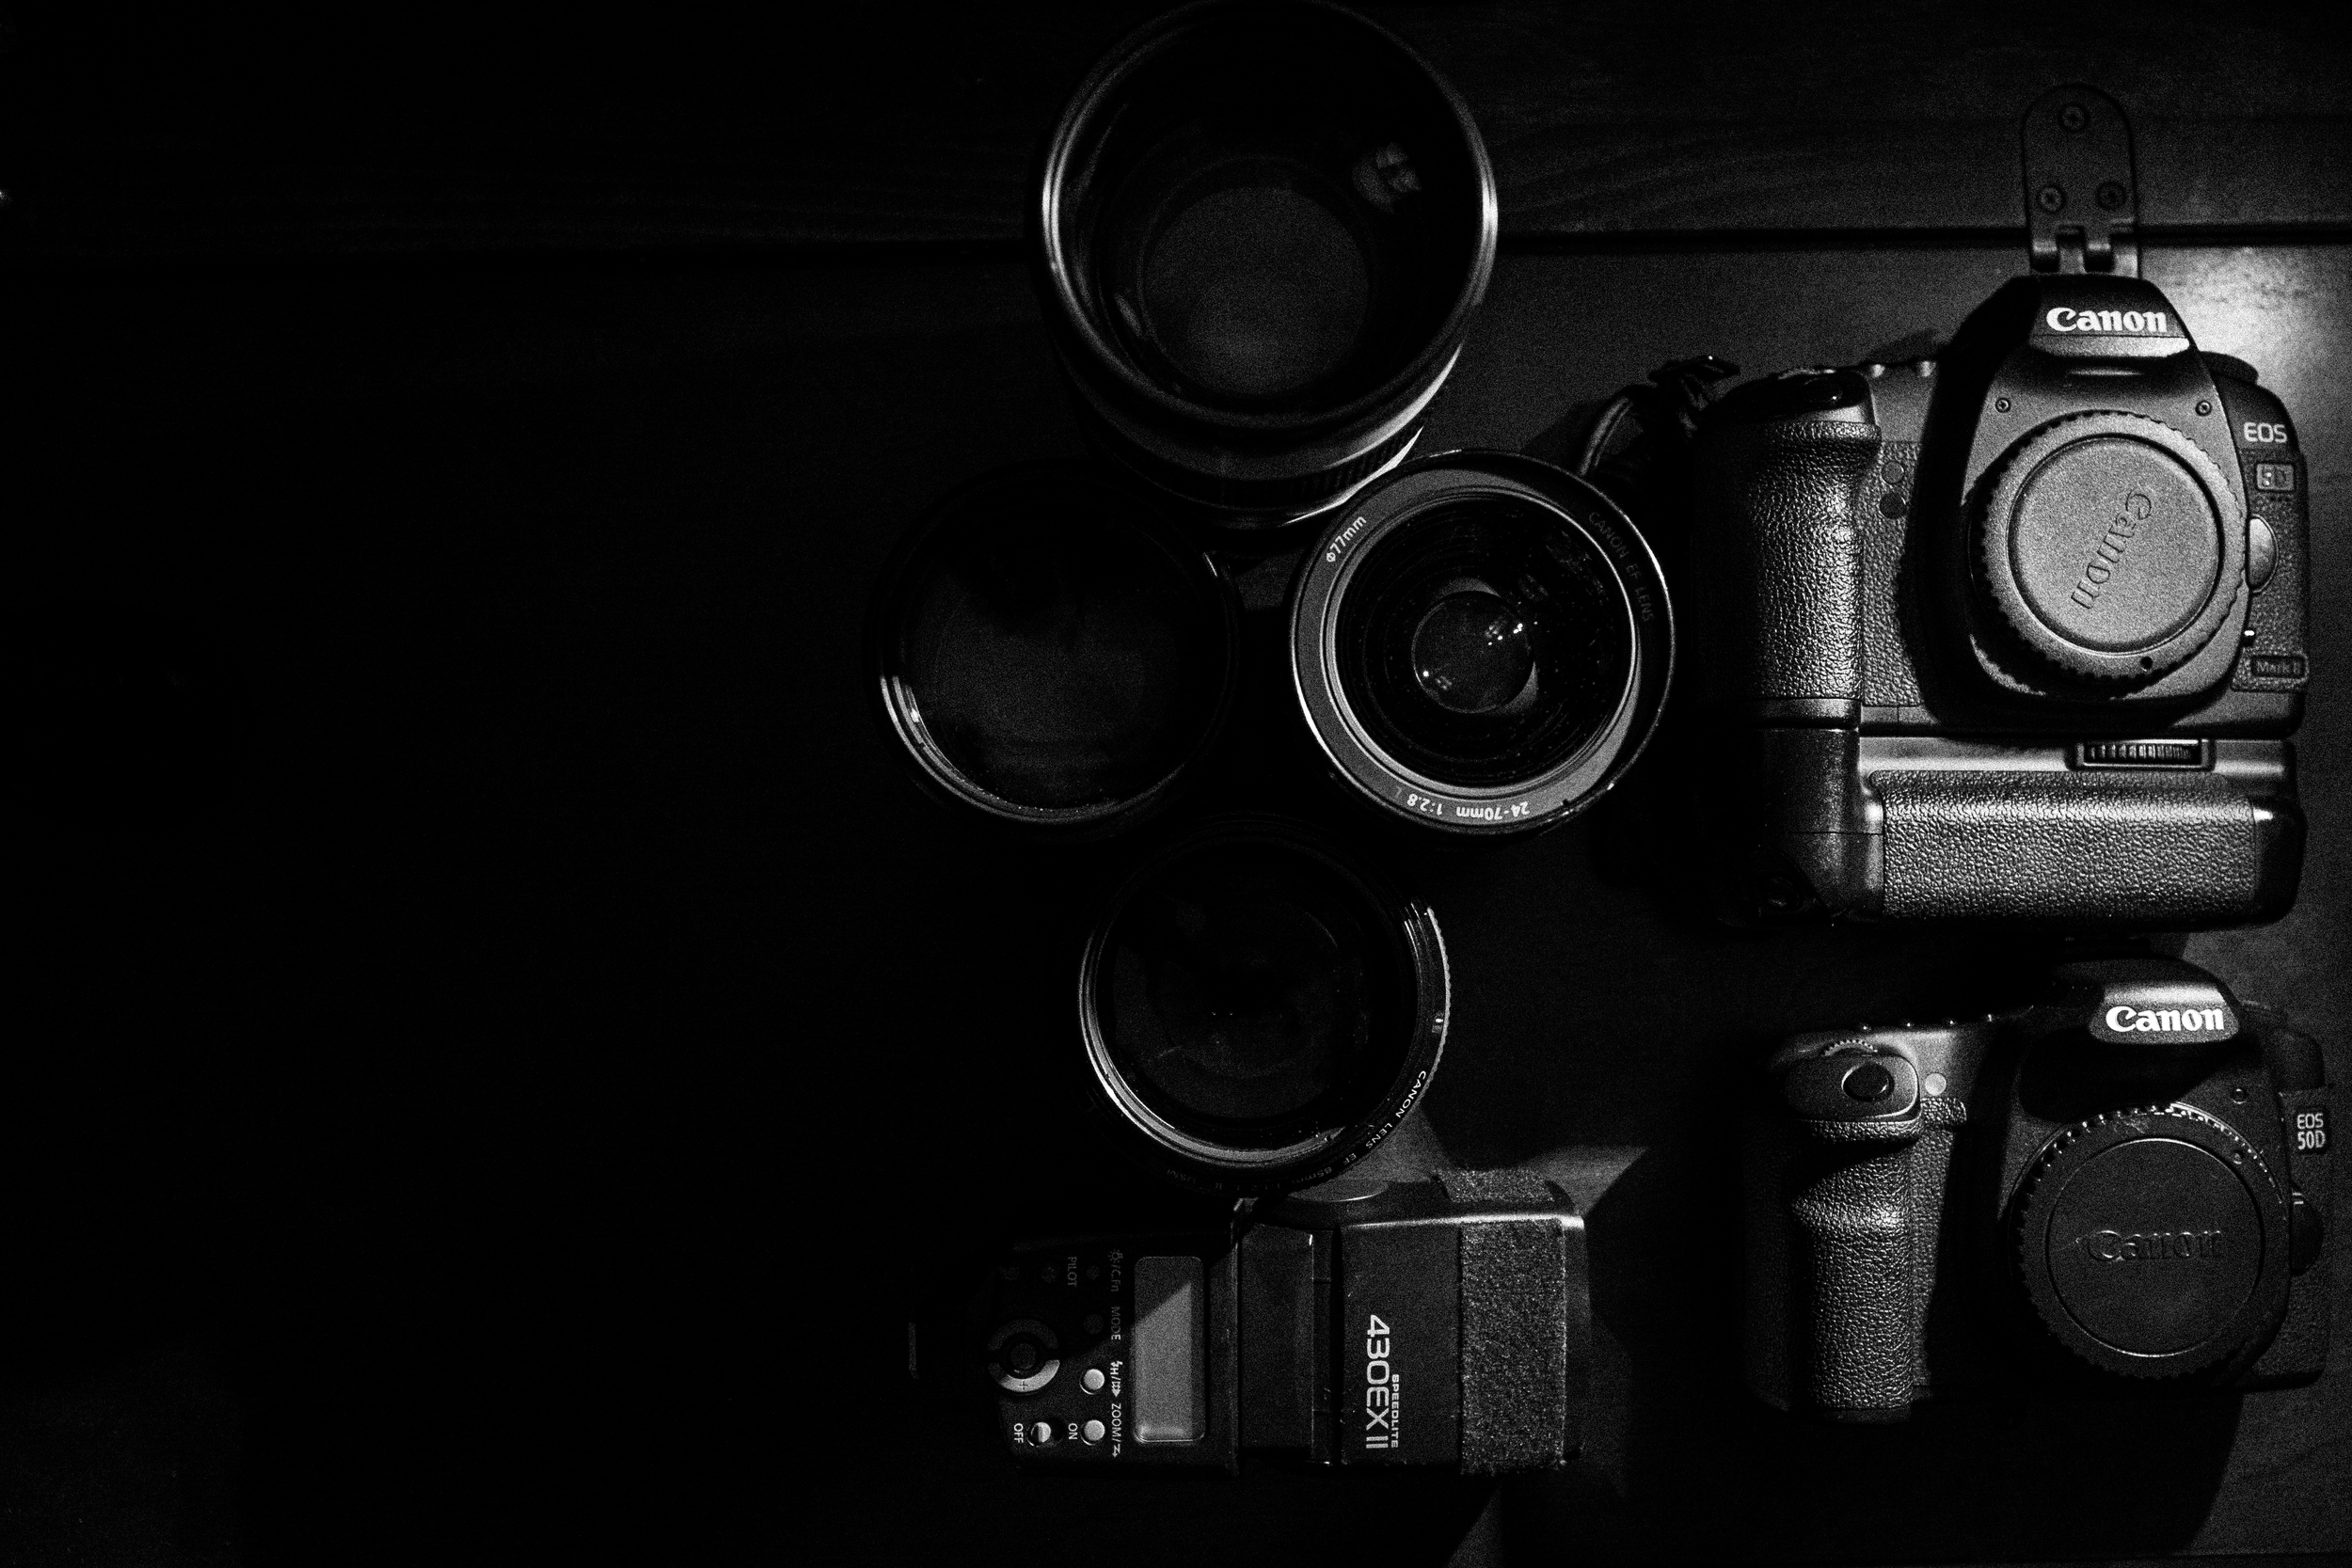 The Canon bag, Photo by W Neder